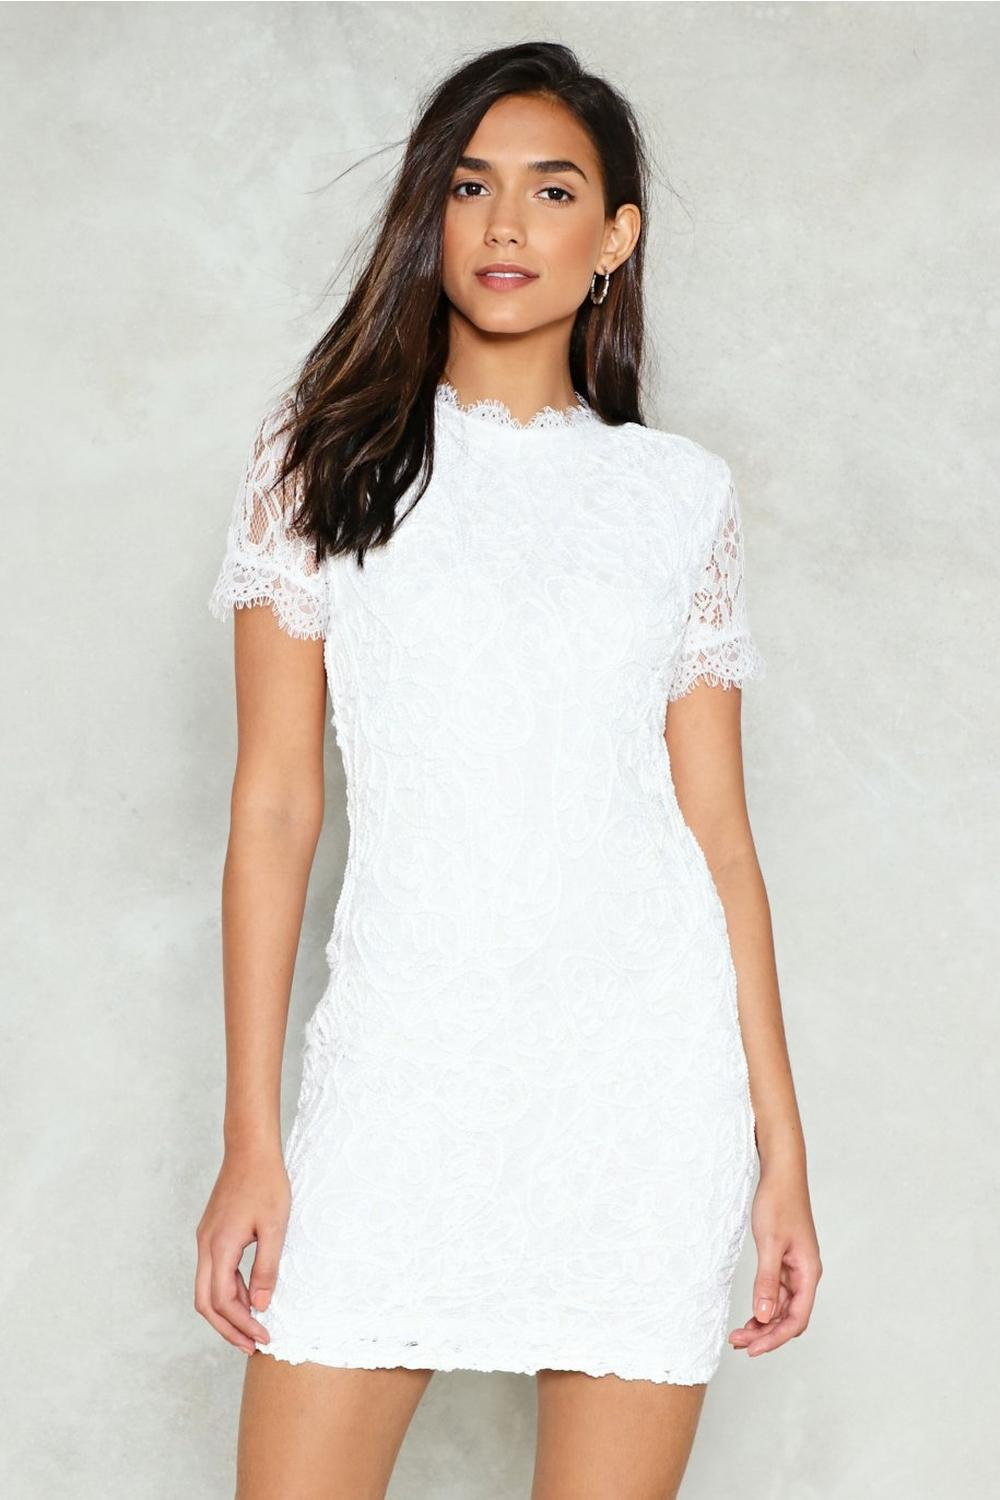 bf0bcaccbd3c First Time Ever I Saw Your Lace Mini Dress